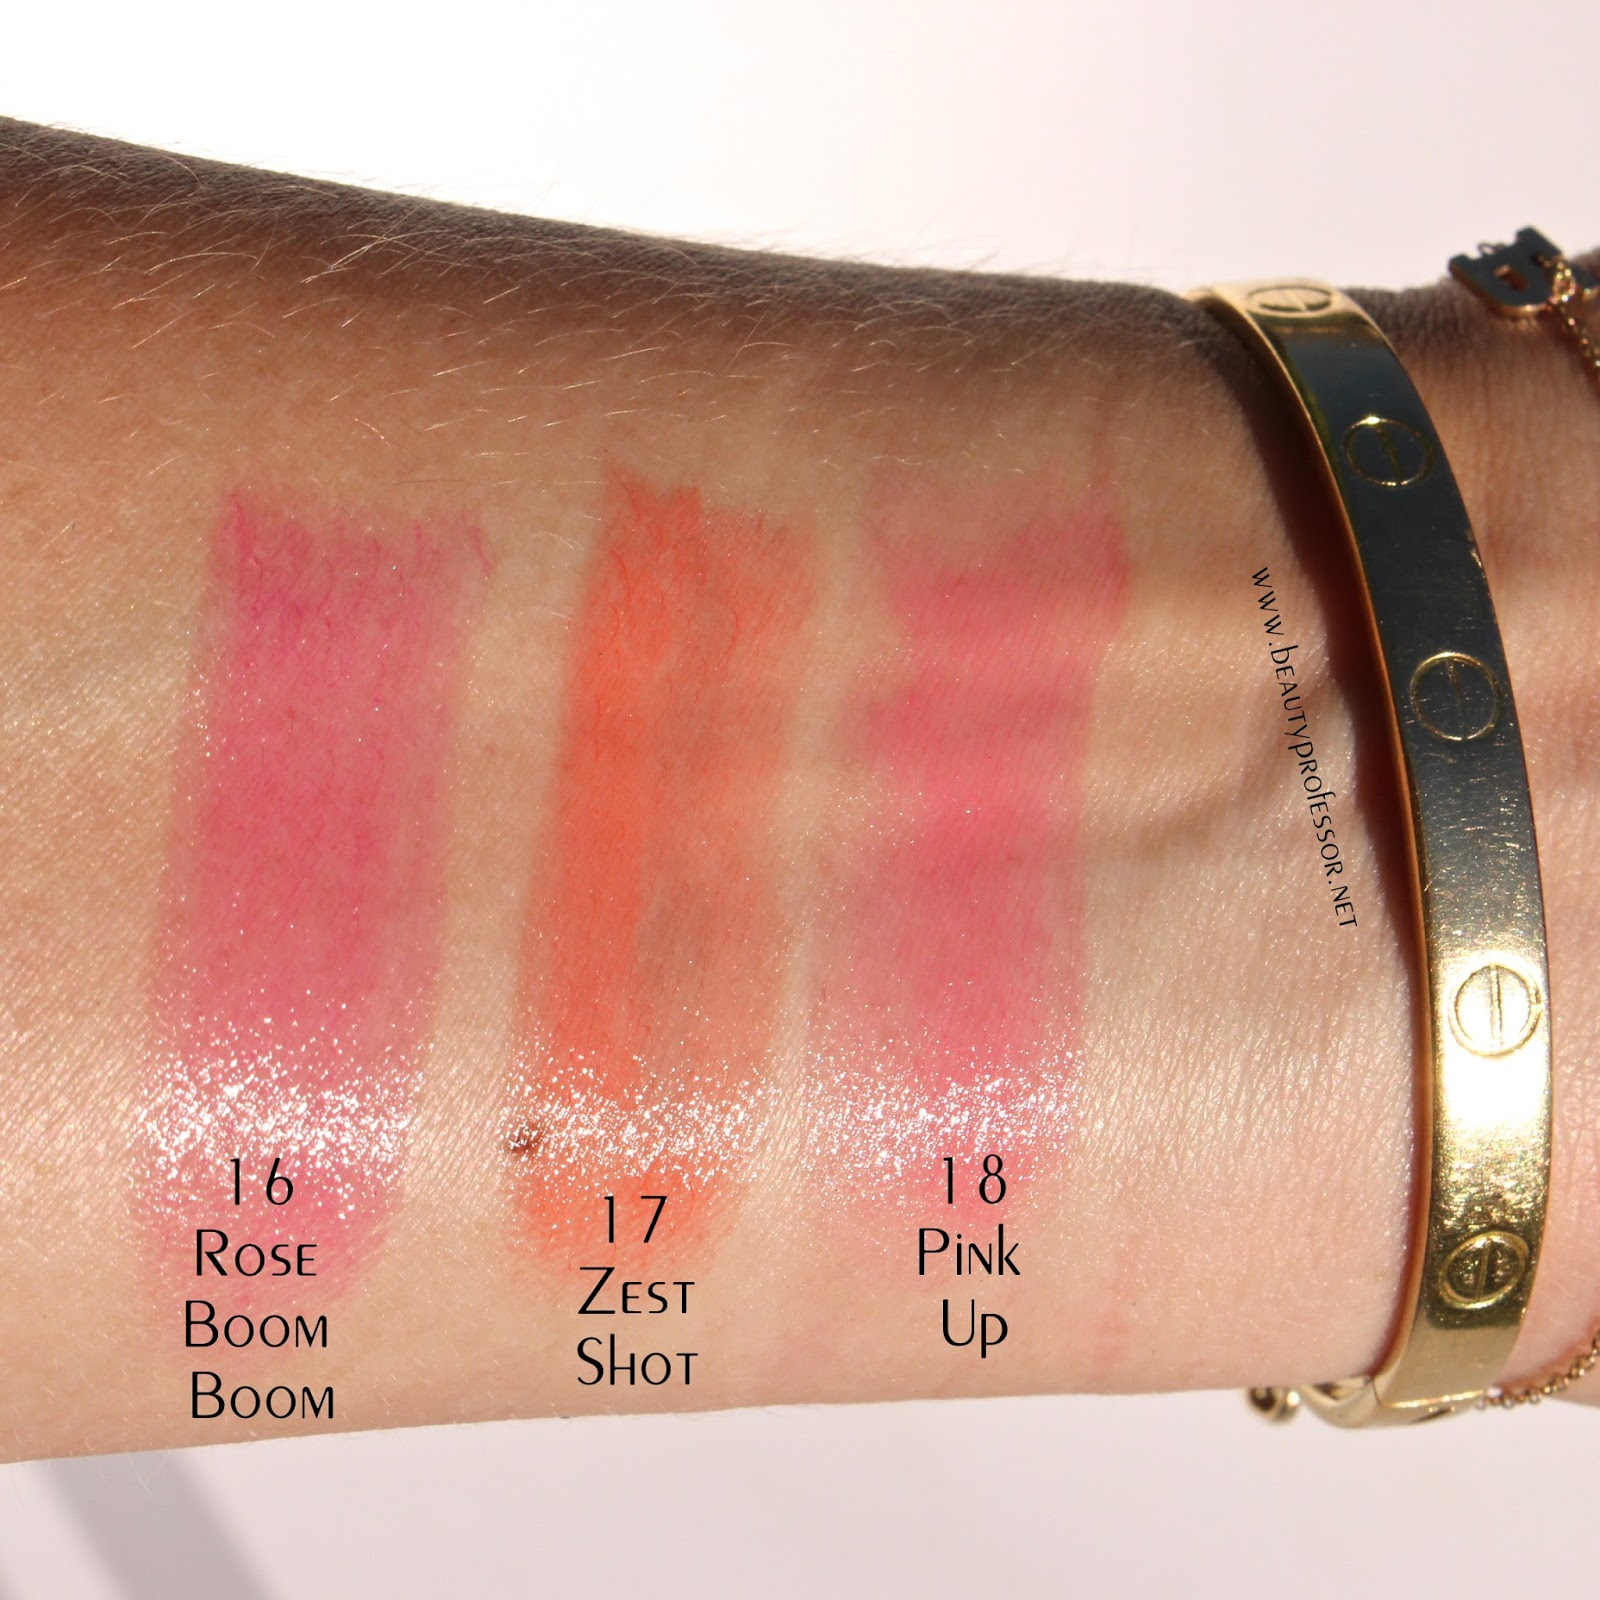 by terry rose balm gloss